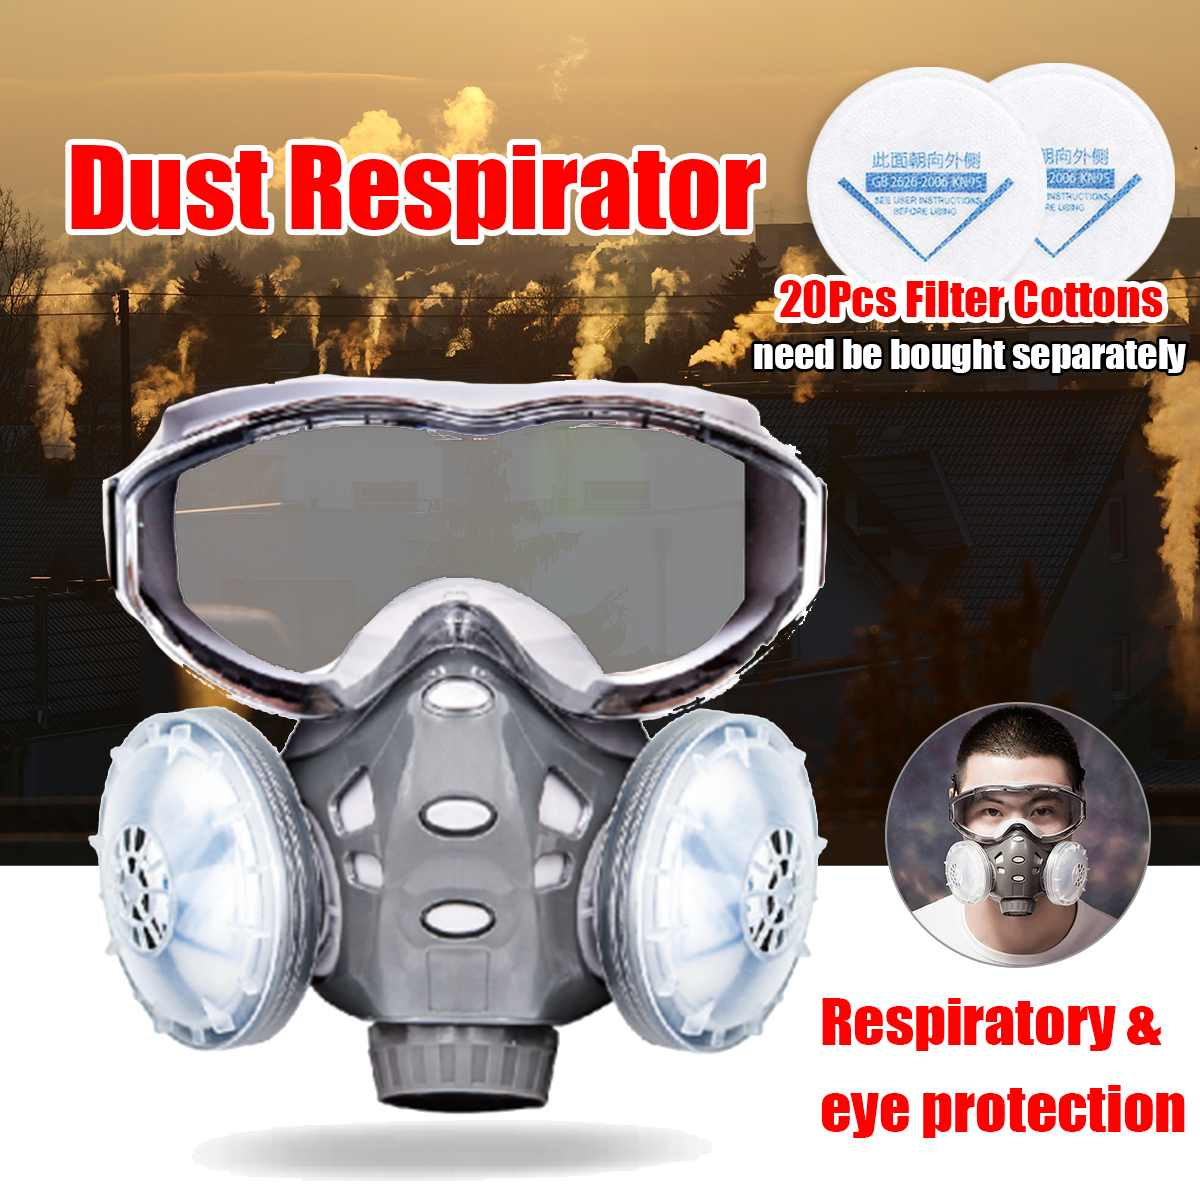 308 8200 Dust Mask Respirator With Safety Glasses Dual Filters Cotton Full Face Mask Dust-proof For Carpenter Builder Polishing